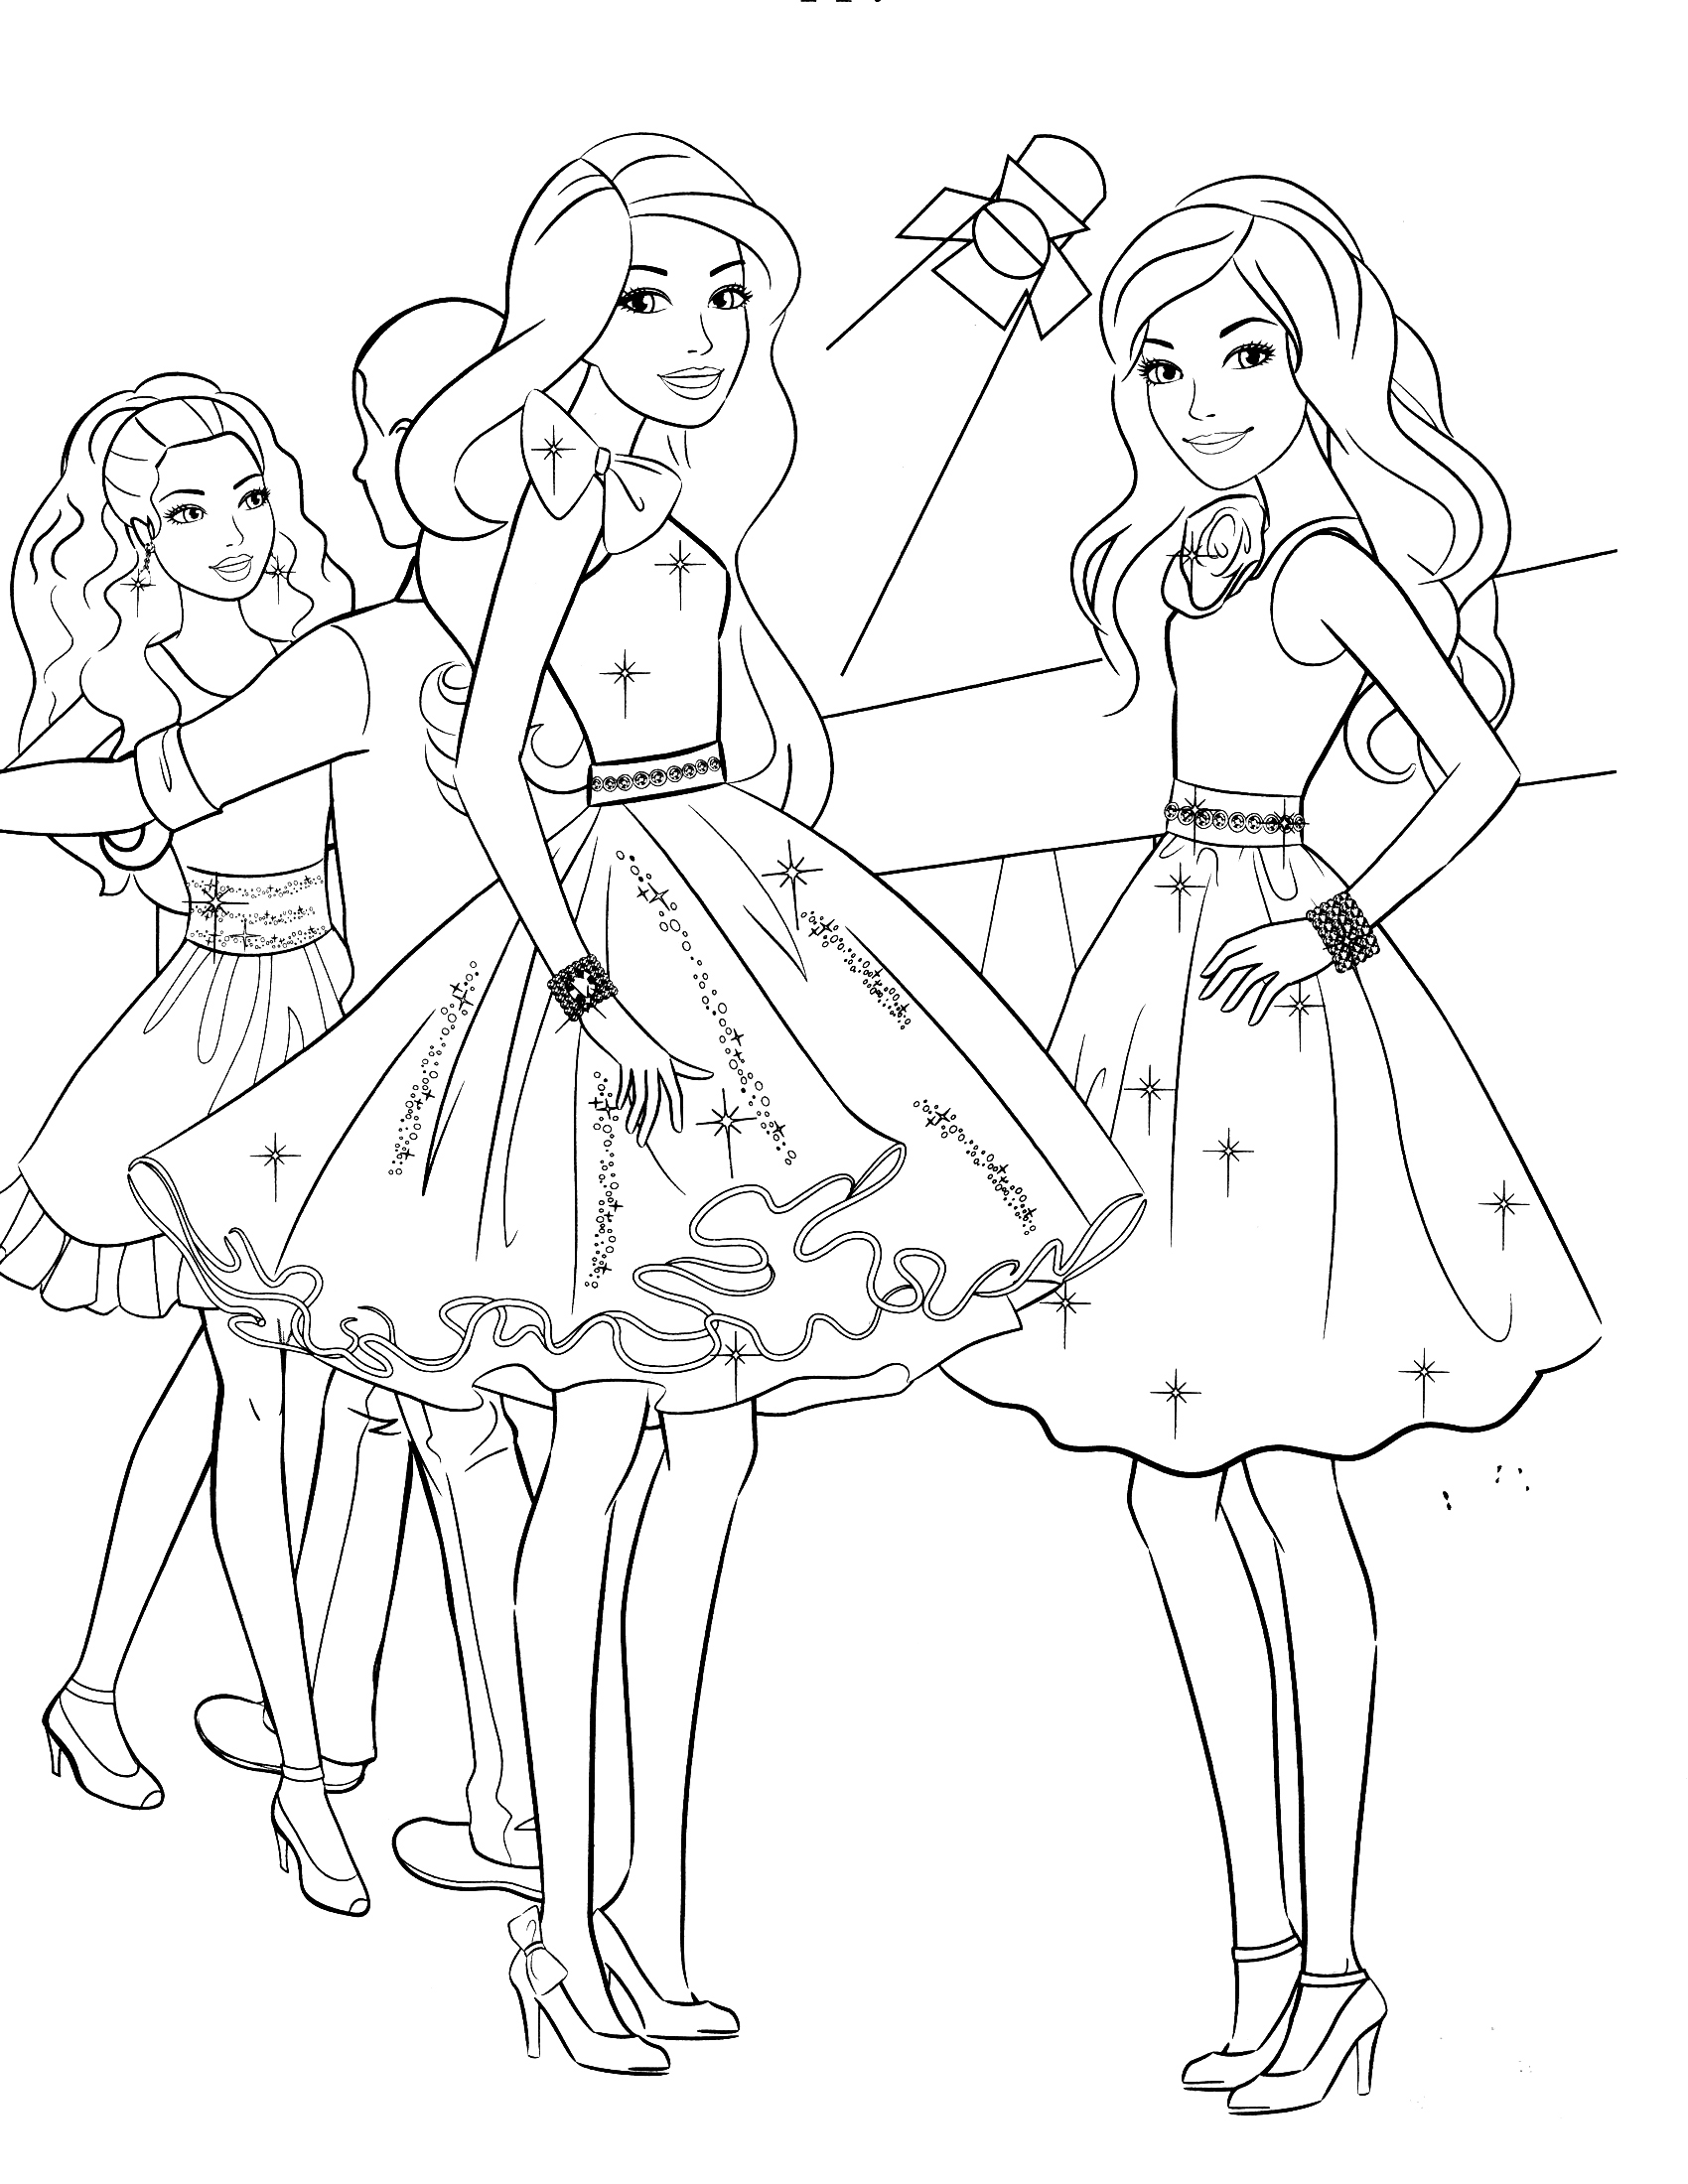 Printable coloring pages tangled -  Templates Printable Disney Holiday Coloring Pages Tangled Coloring Page 85 Barbie Coloring Pages For Girls Barbie